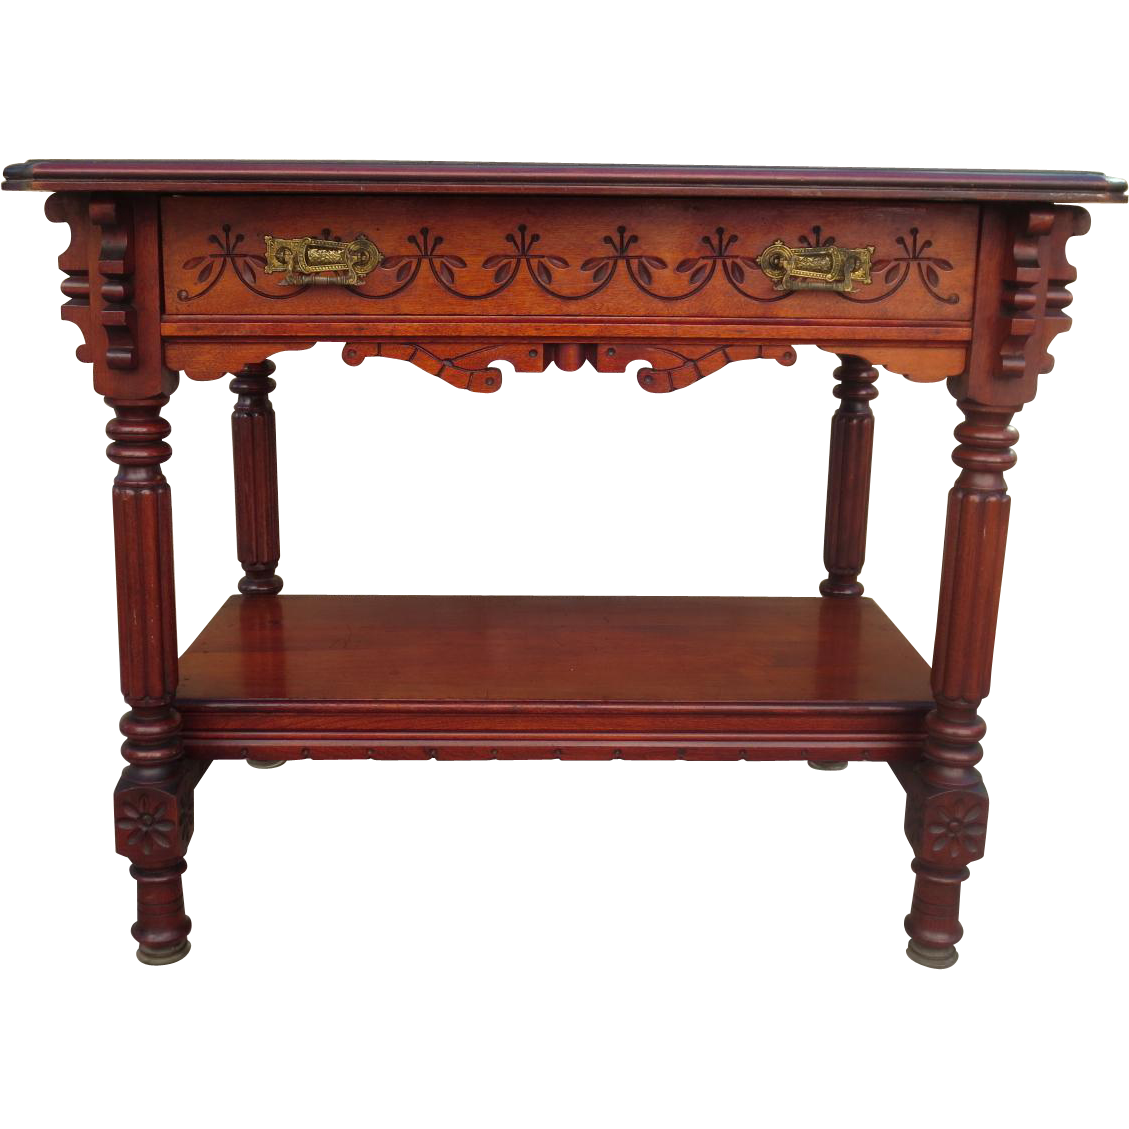 Victorian furniture table - American Antique Victorian Eastlake Table Antique Victorian Desk Antique Side Table Work Table Antique Furniture